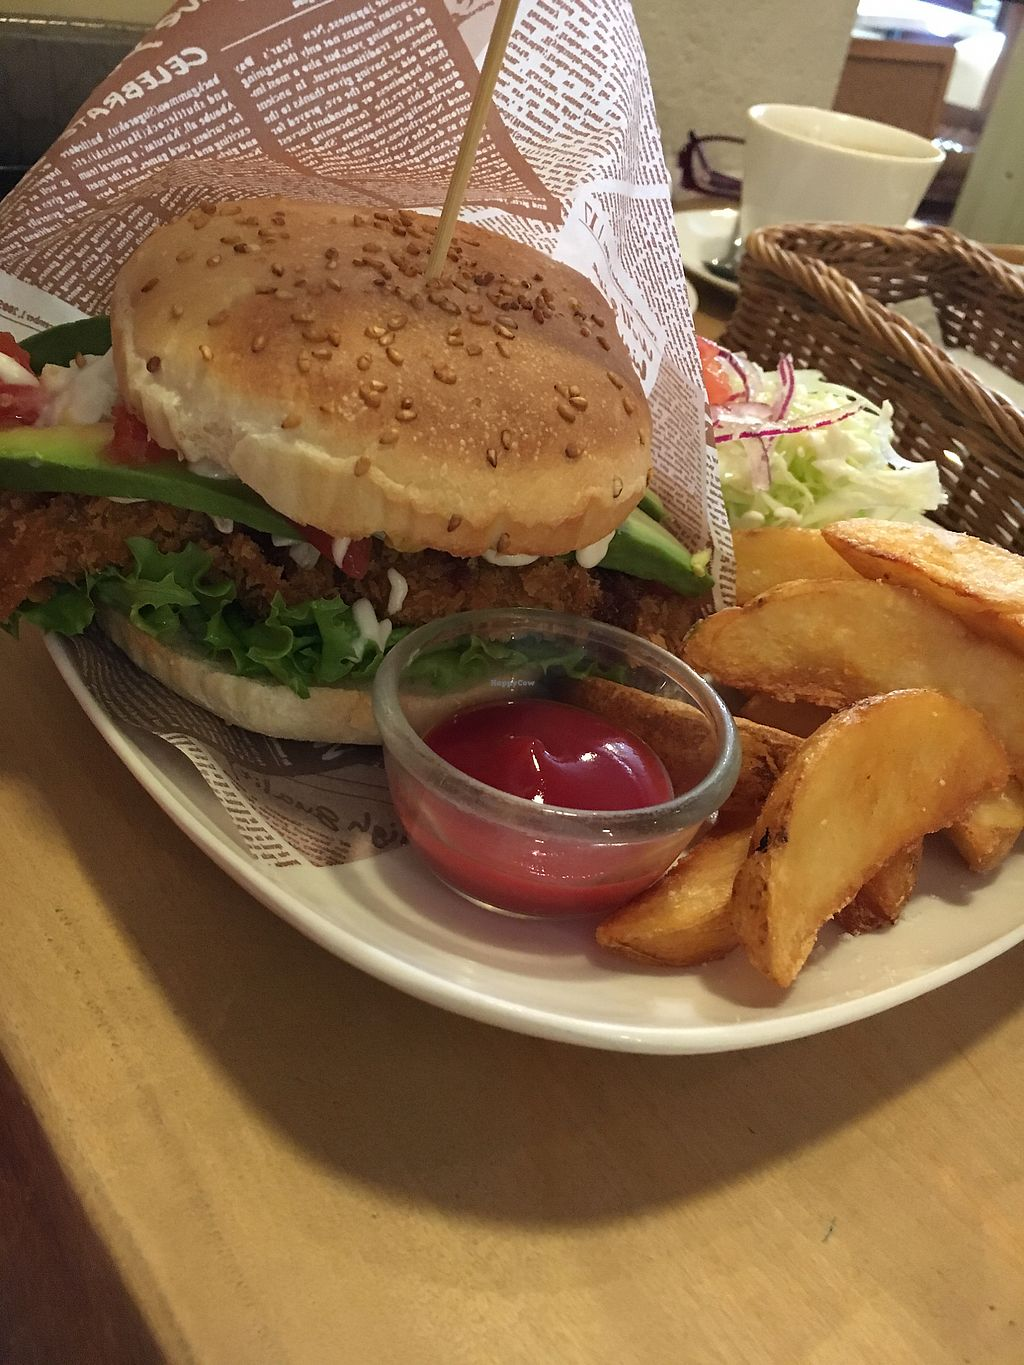 """Photo of Morpho Cafe  by <a href=""""/members/profile/VeganBec"""">VeganBec</a> <br/>Mmmm Fish Burger <br/> April 7, 2018  - <a href='/contact/abuse/image/32107/381867'>Report</a>"""